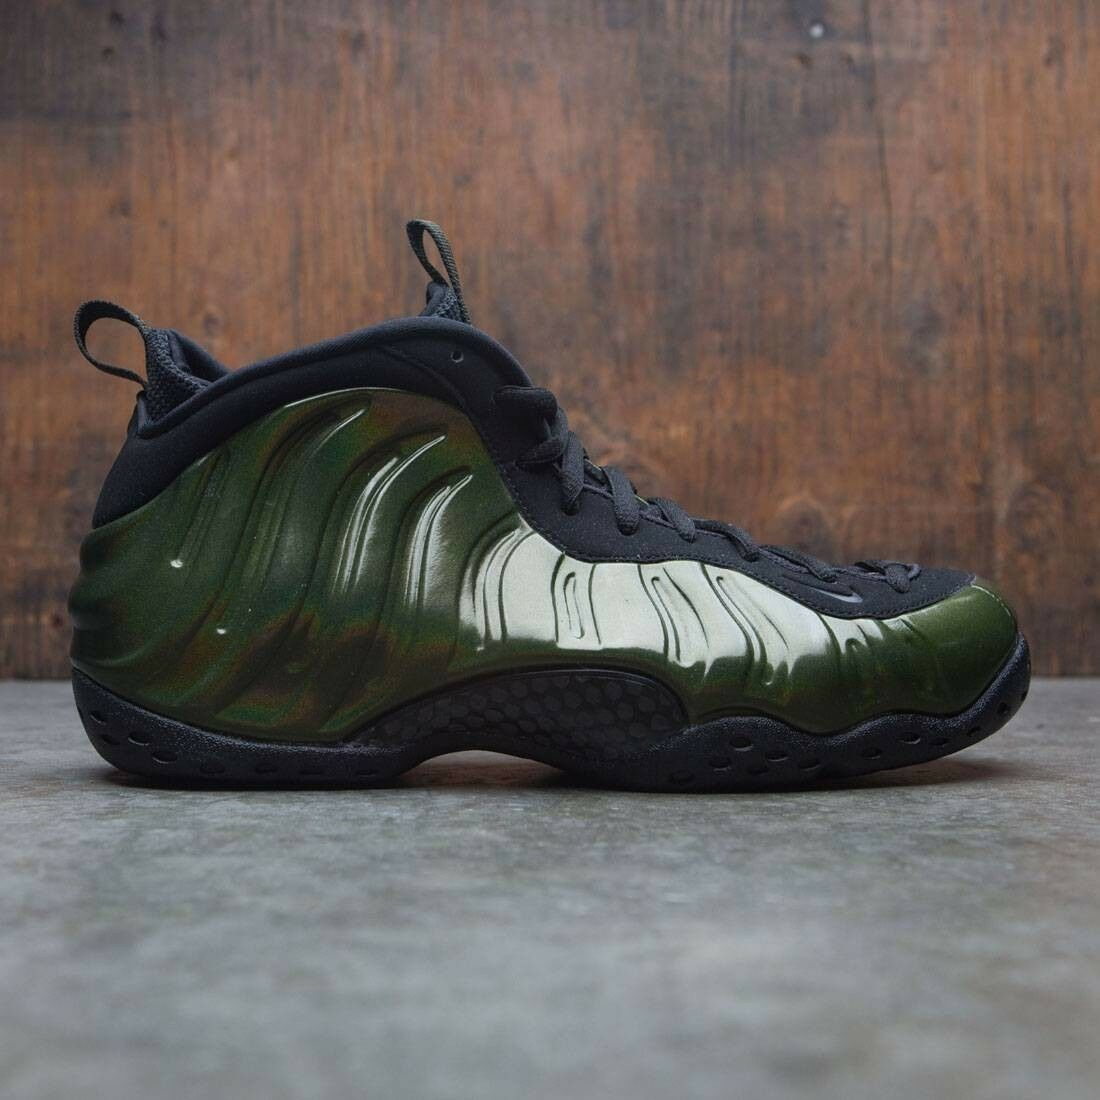 2017 Nike Air Size Foamposite One Legion Green Size Air 13. 314996-301 Jordan Penny 954525